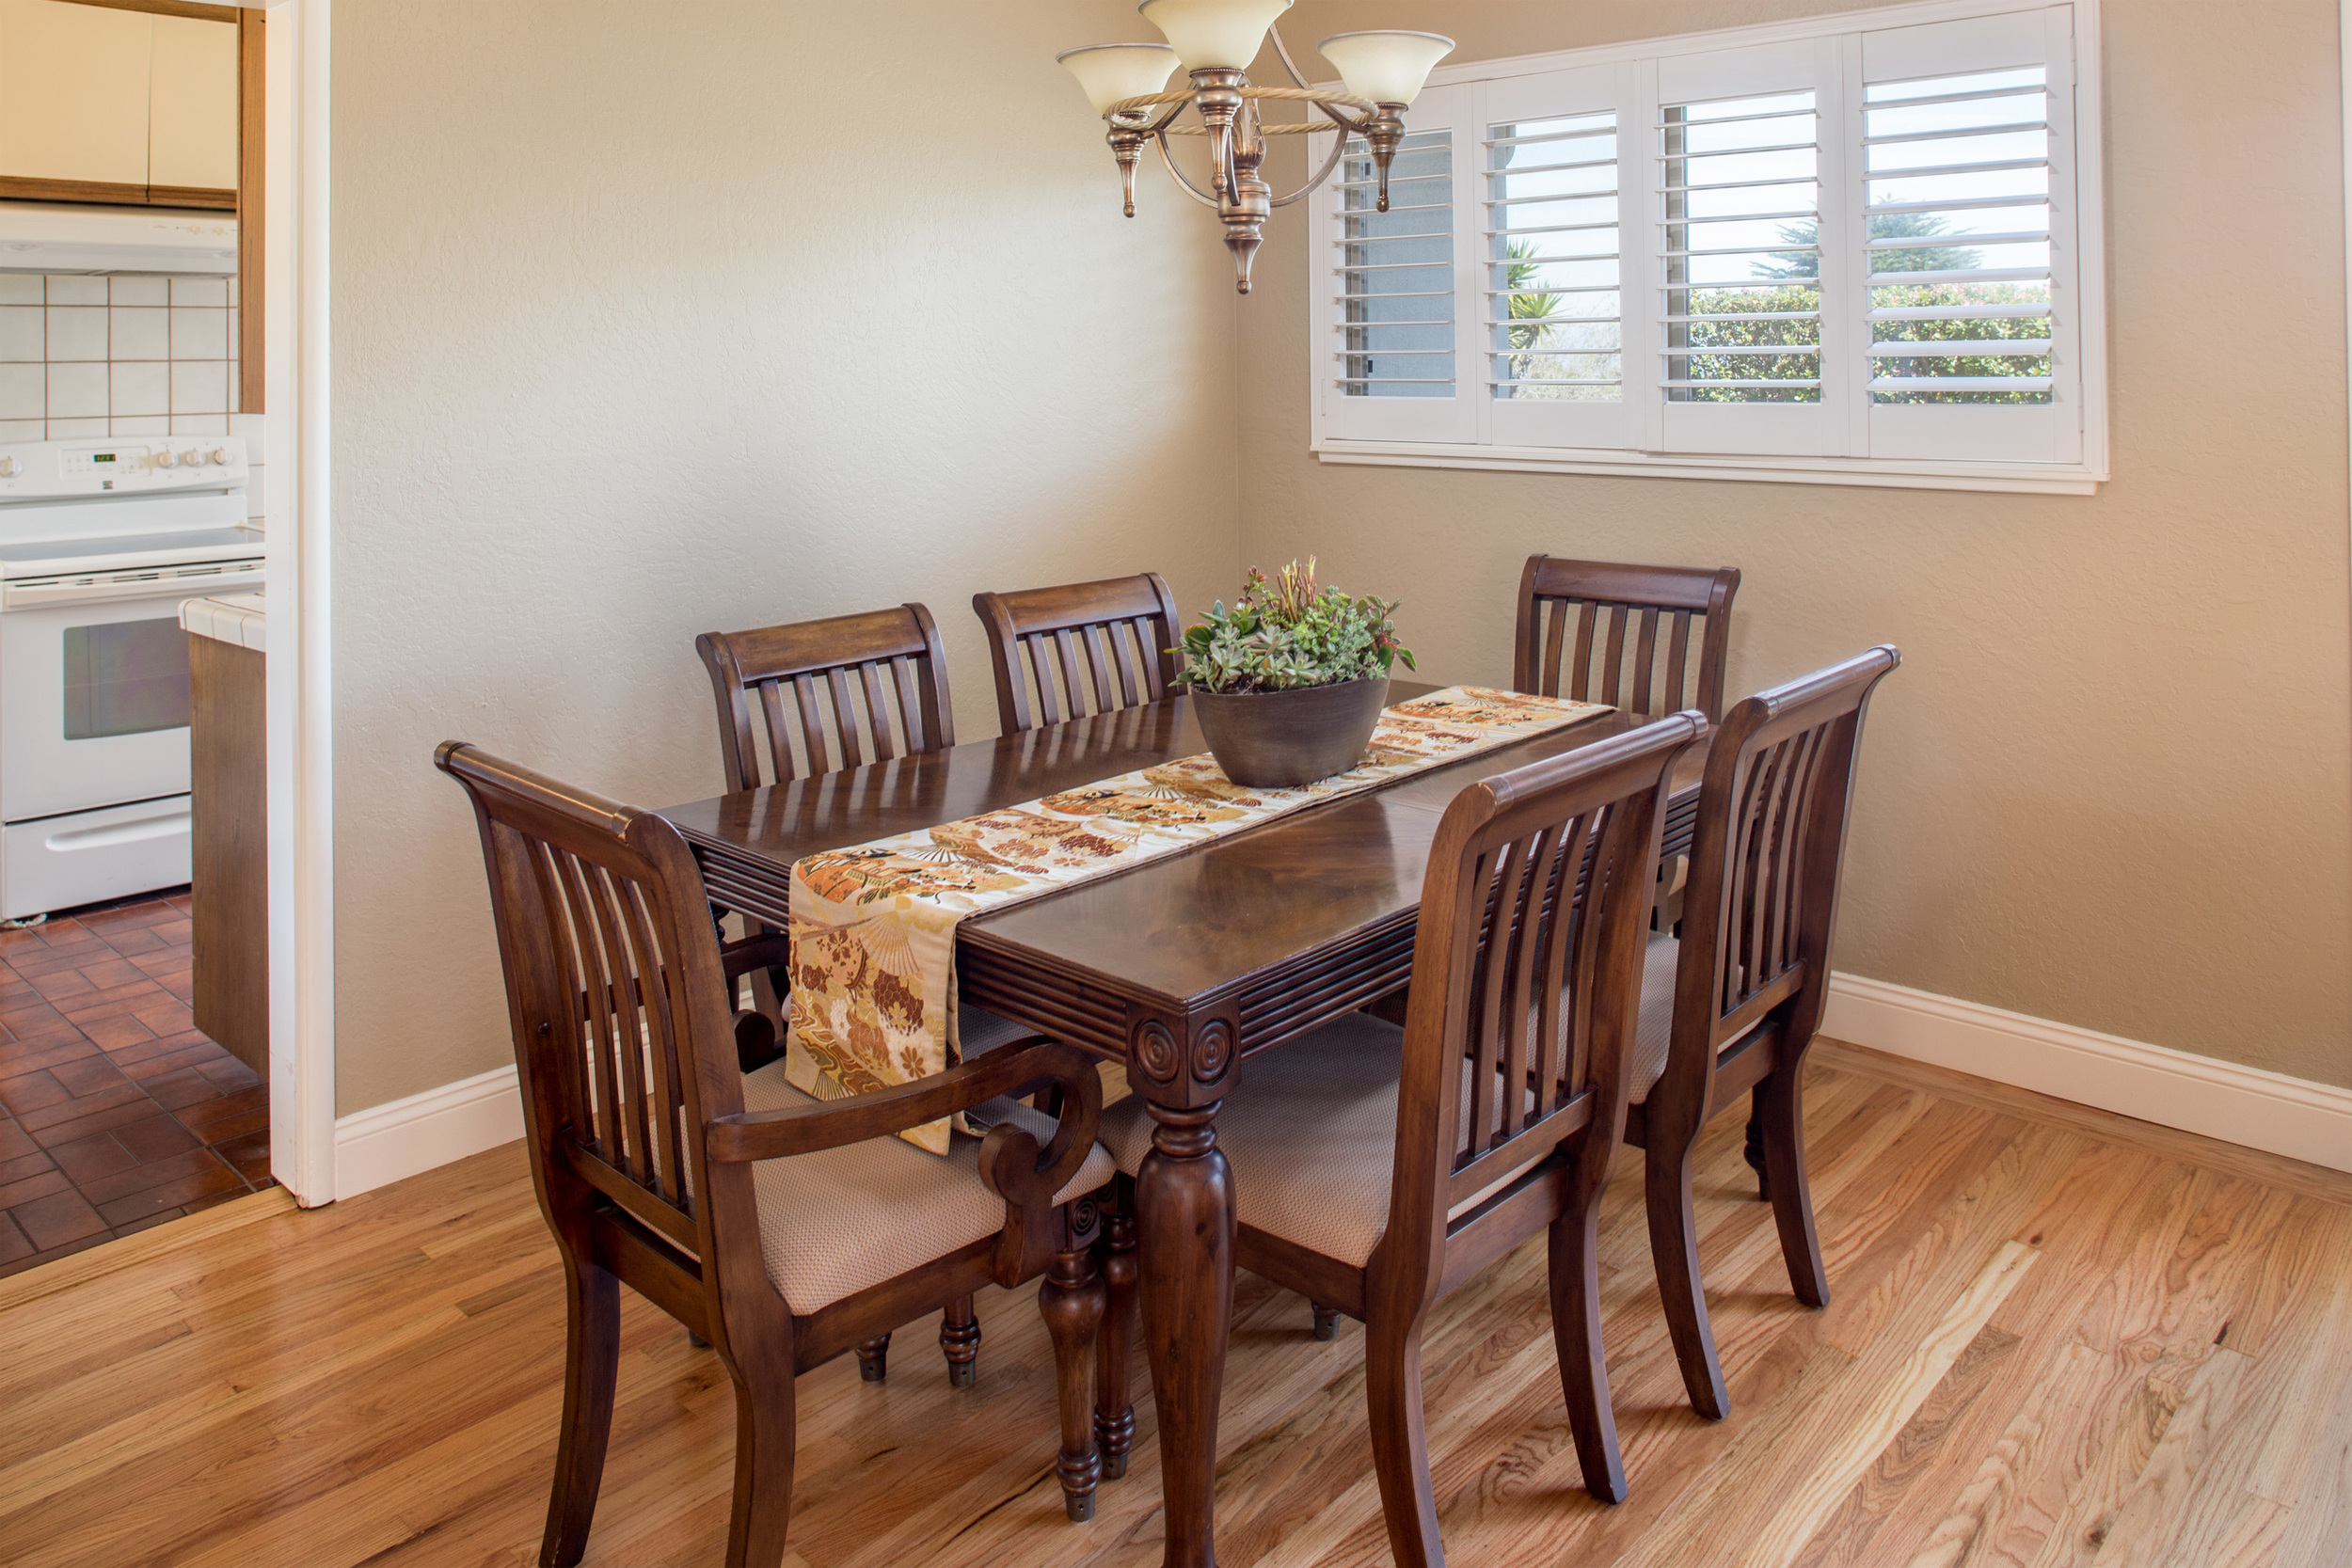 5-Dining room with newly refinished hardwood floors and plantation shutters.jpg